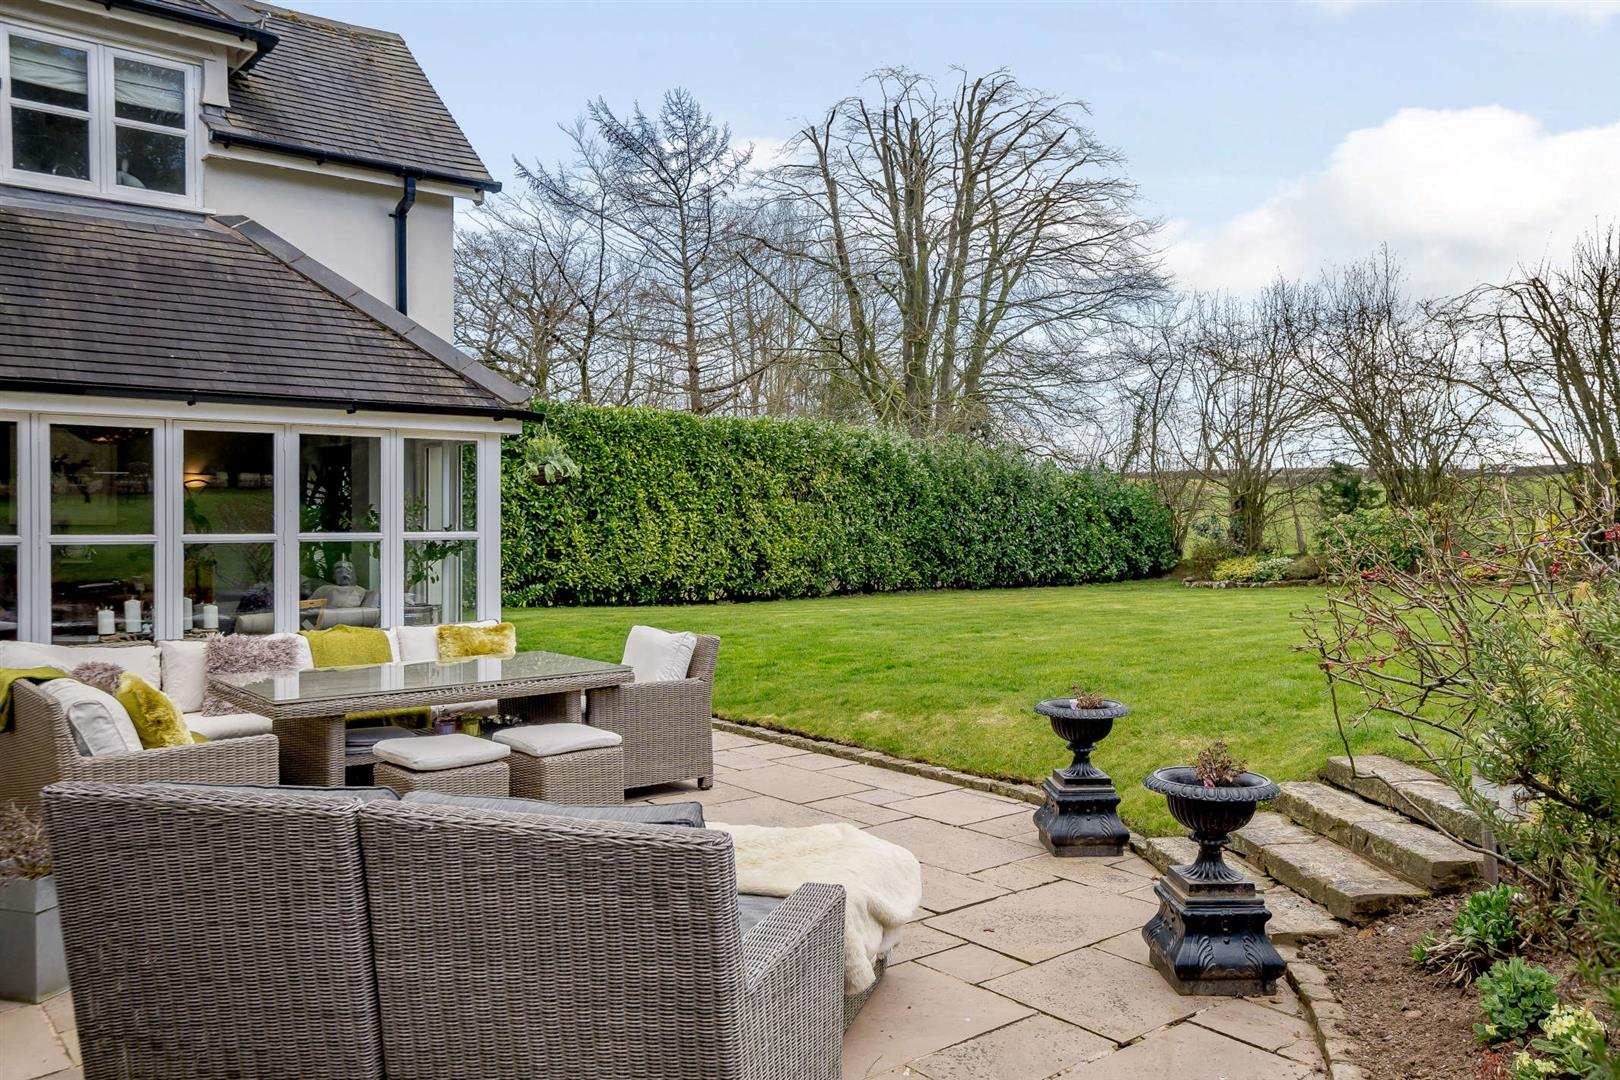 interior styled wicker furniture entertaining terrace in countryside